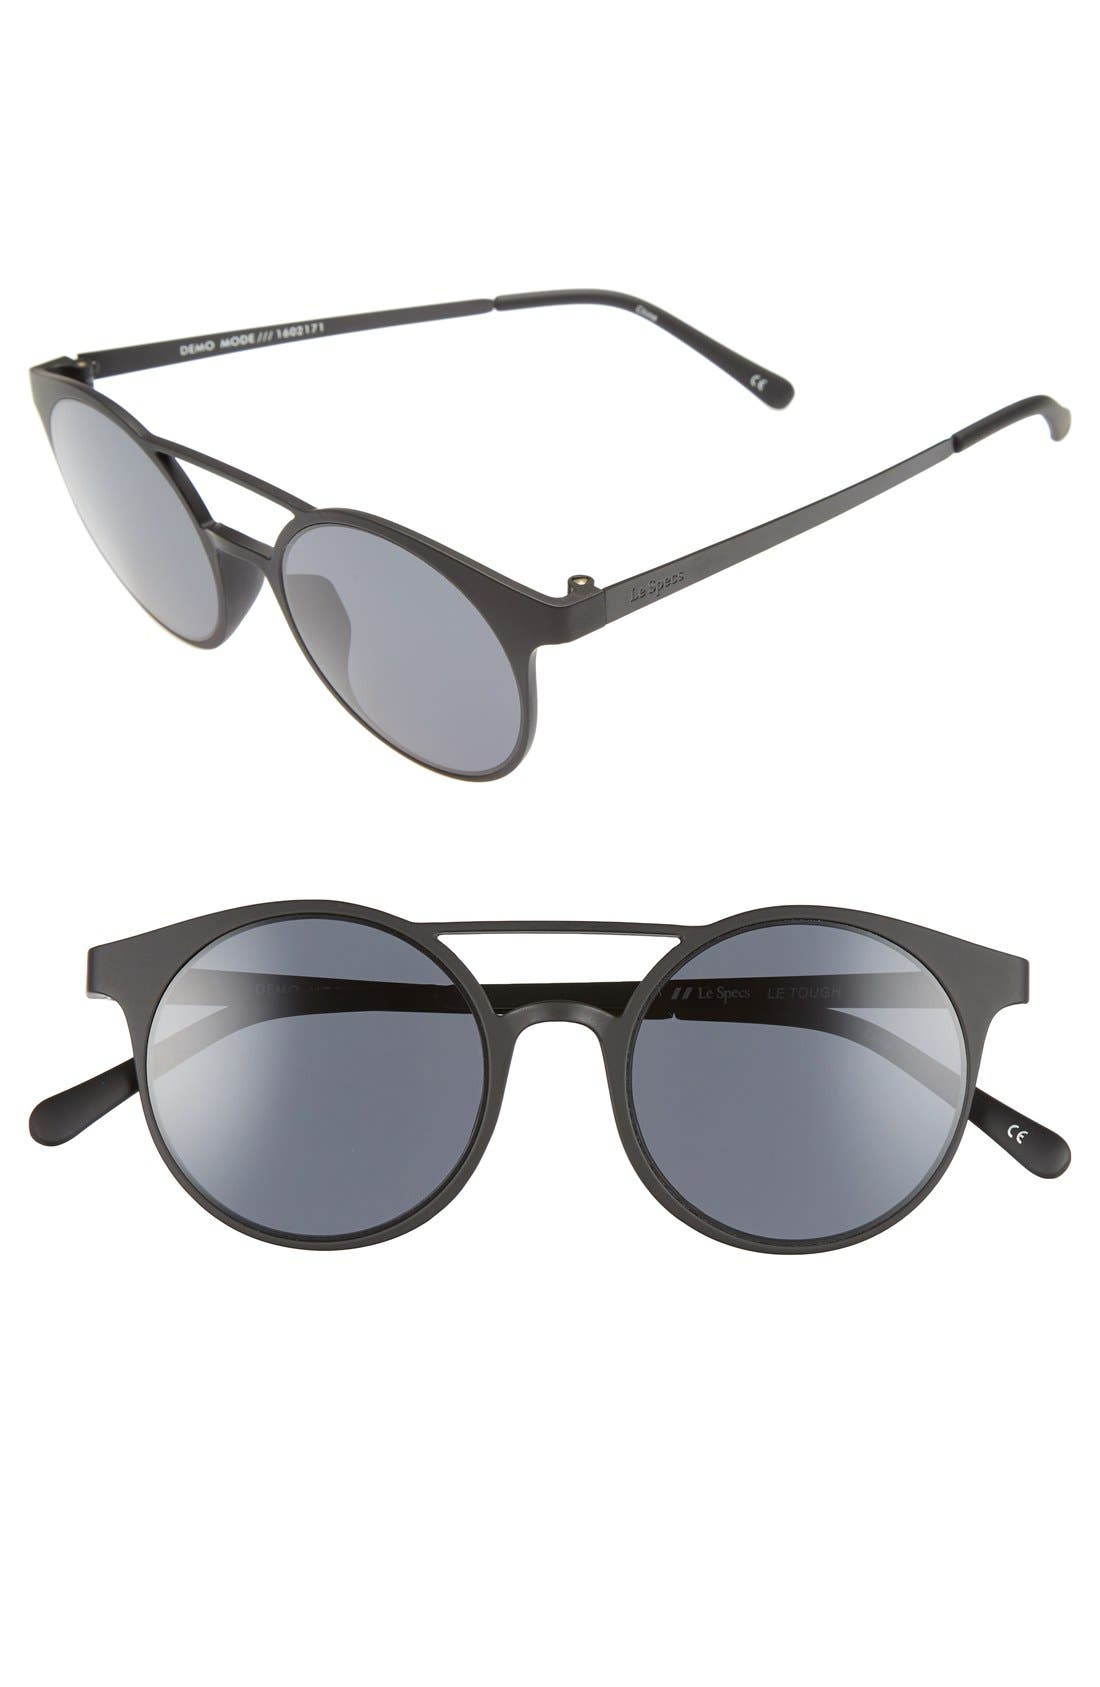 LE SPECS, 'Demo Mode' 49mm Aviator Sunglasses, Main thumbnail 1, color, 001